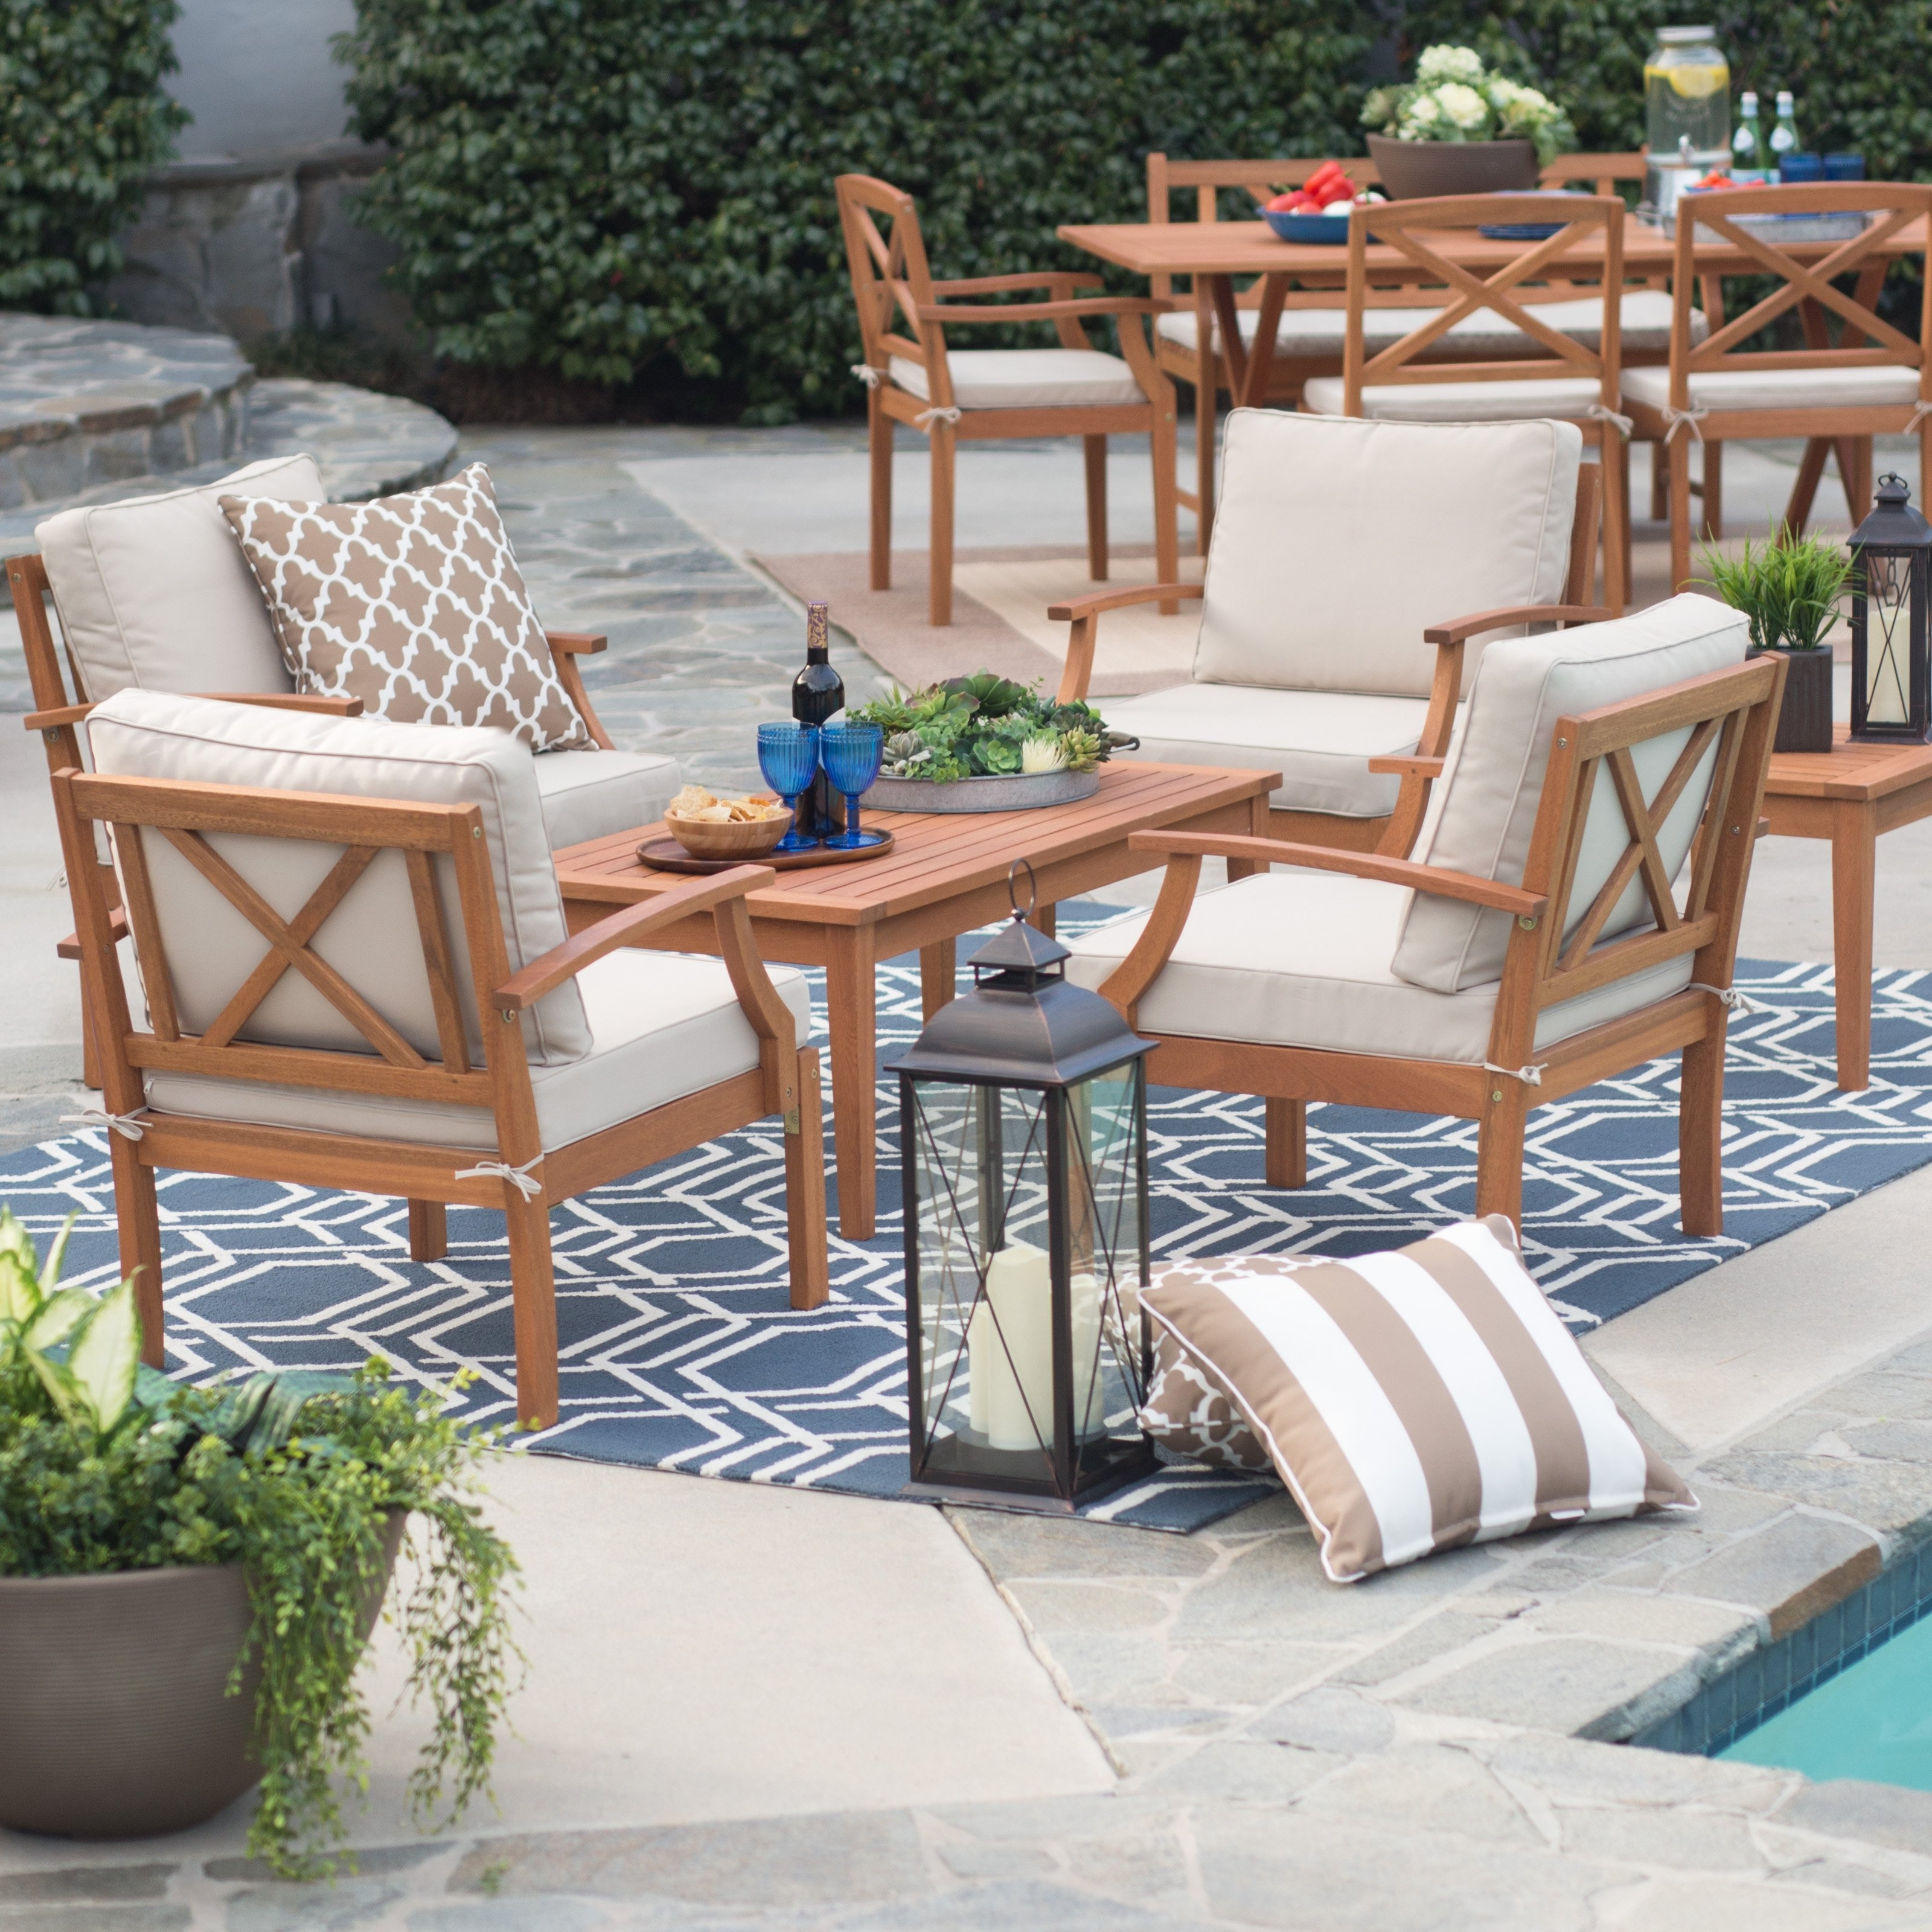 Hayneedle Patio Conversation Sets Regarding Most Up To Date Belham Living Brighton Outdoor Wood Deep Seating Conversation Set (View 10 of 20)